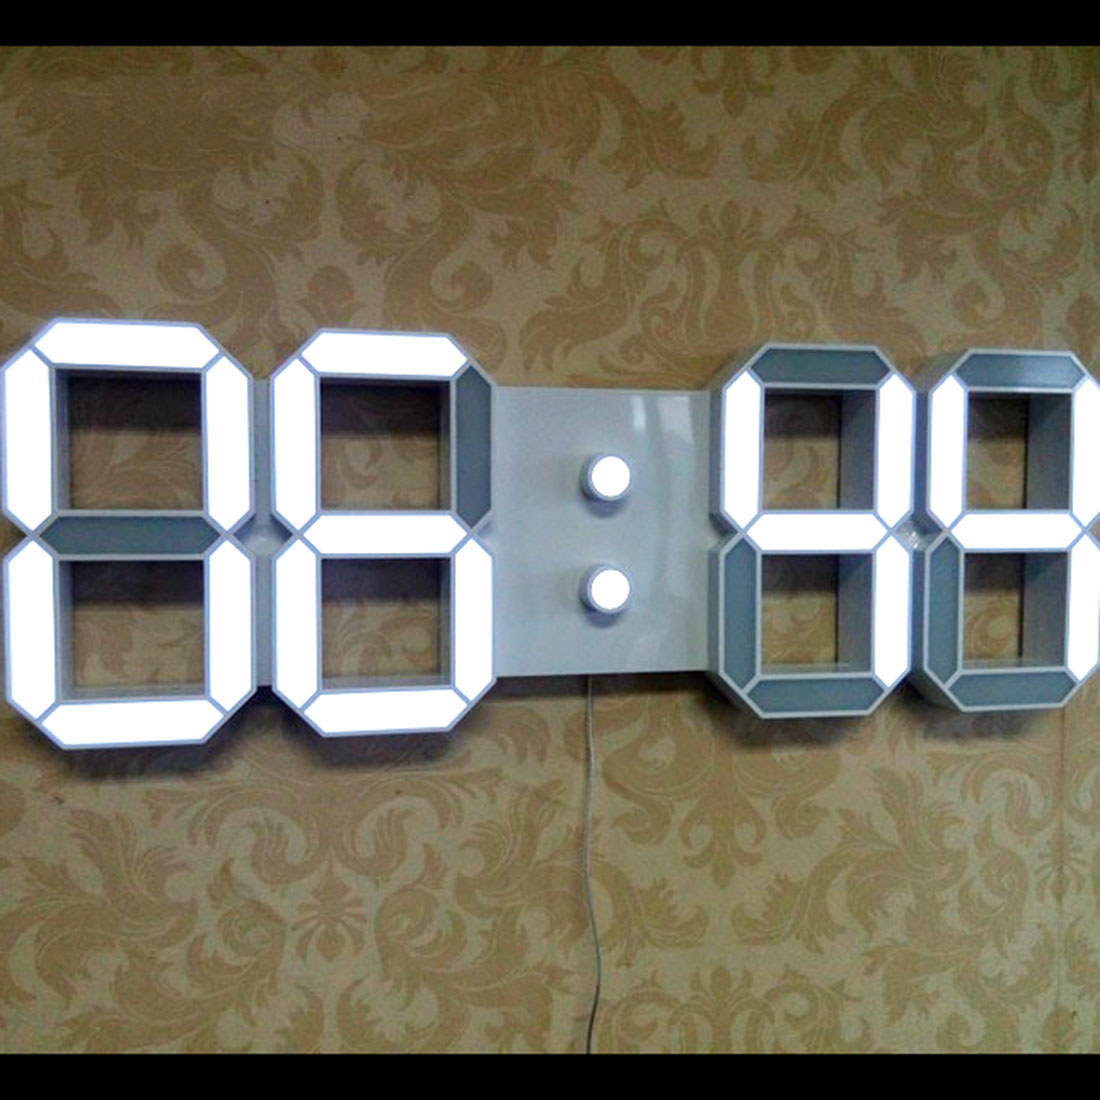 Large modern design digital led wall clocks big creative vintage large modern design digital led wall clocks big creative vintage watch home decoration decor 3d gift optional plug in wall clocks from home garden on amipublicfo Choice Image